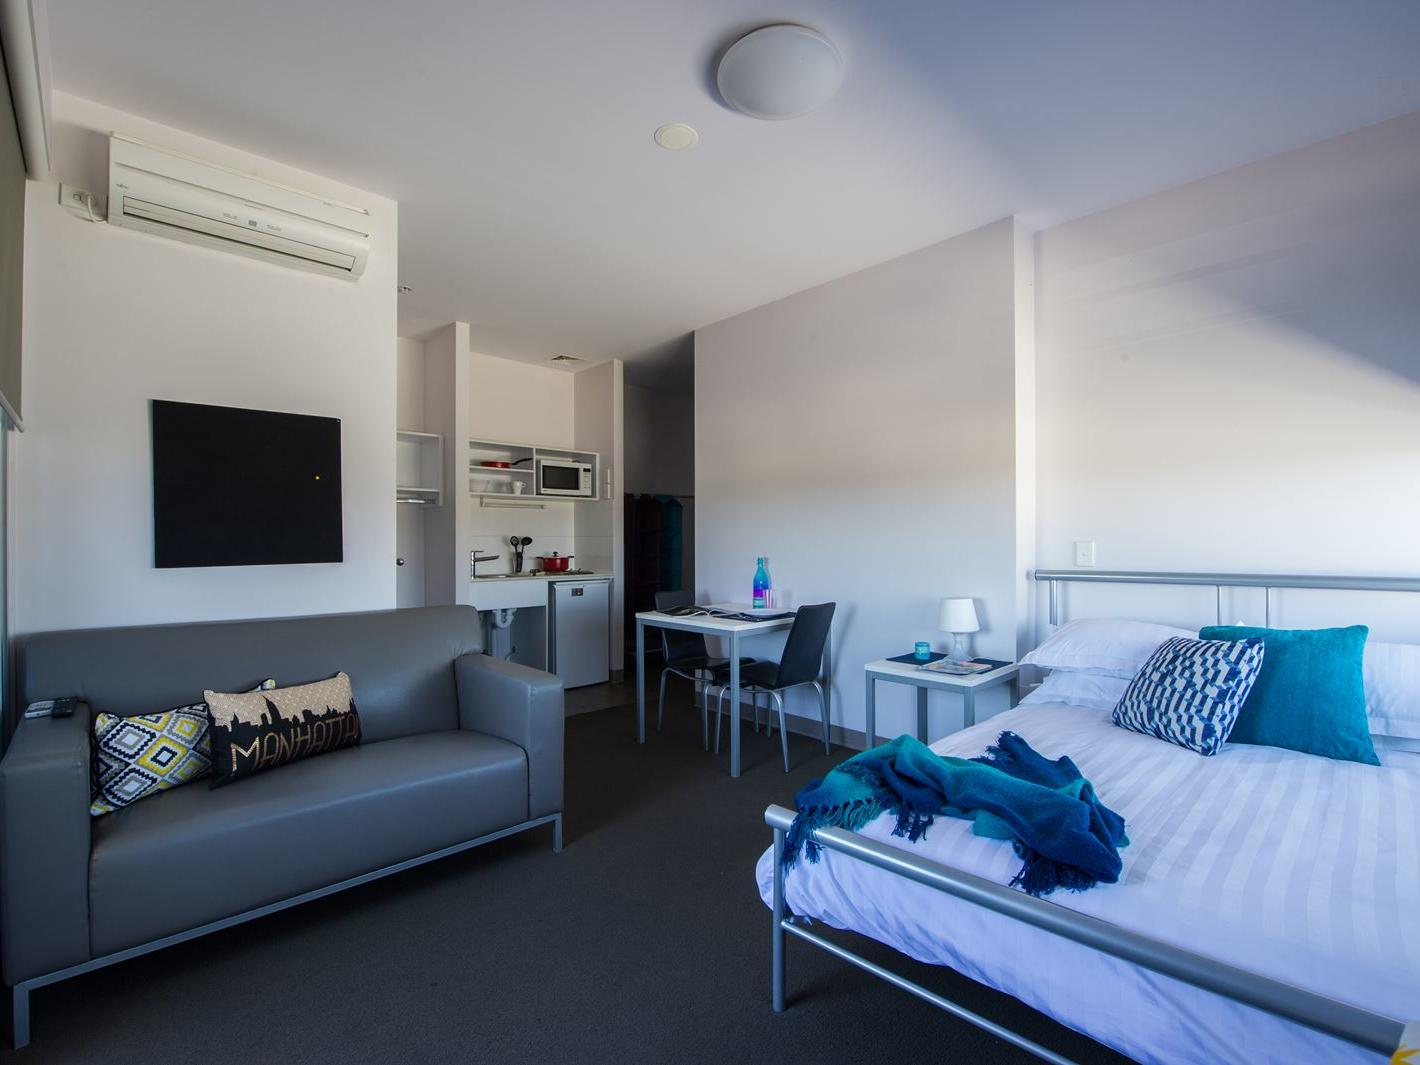 Typical studio double apartment featuring double bed, TV, study desk & chair, bedside table, dining table & chairs, 2 seat lounge, kitchenette & bathroom (not shown) - purchase hotel quality linen via our online shop, Your Shop